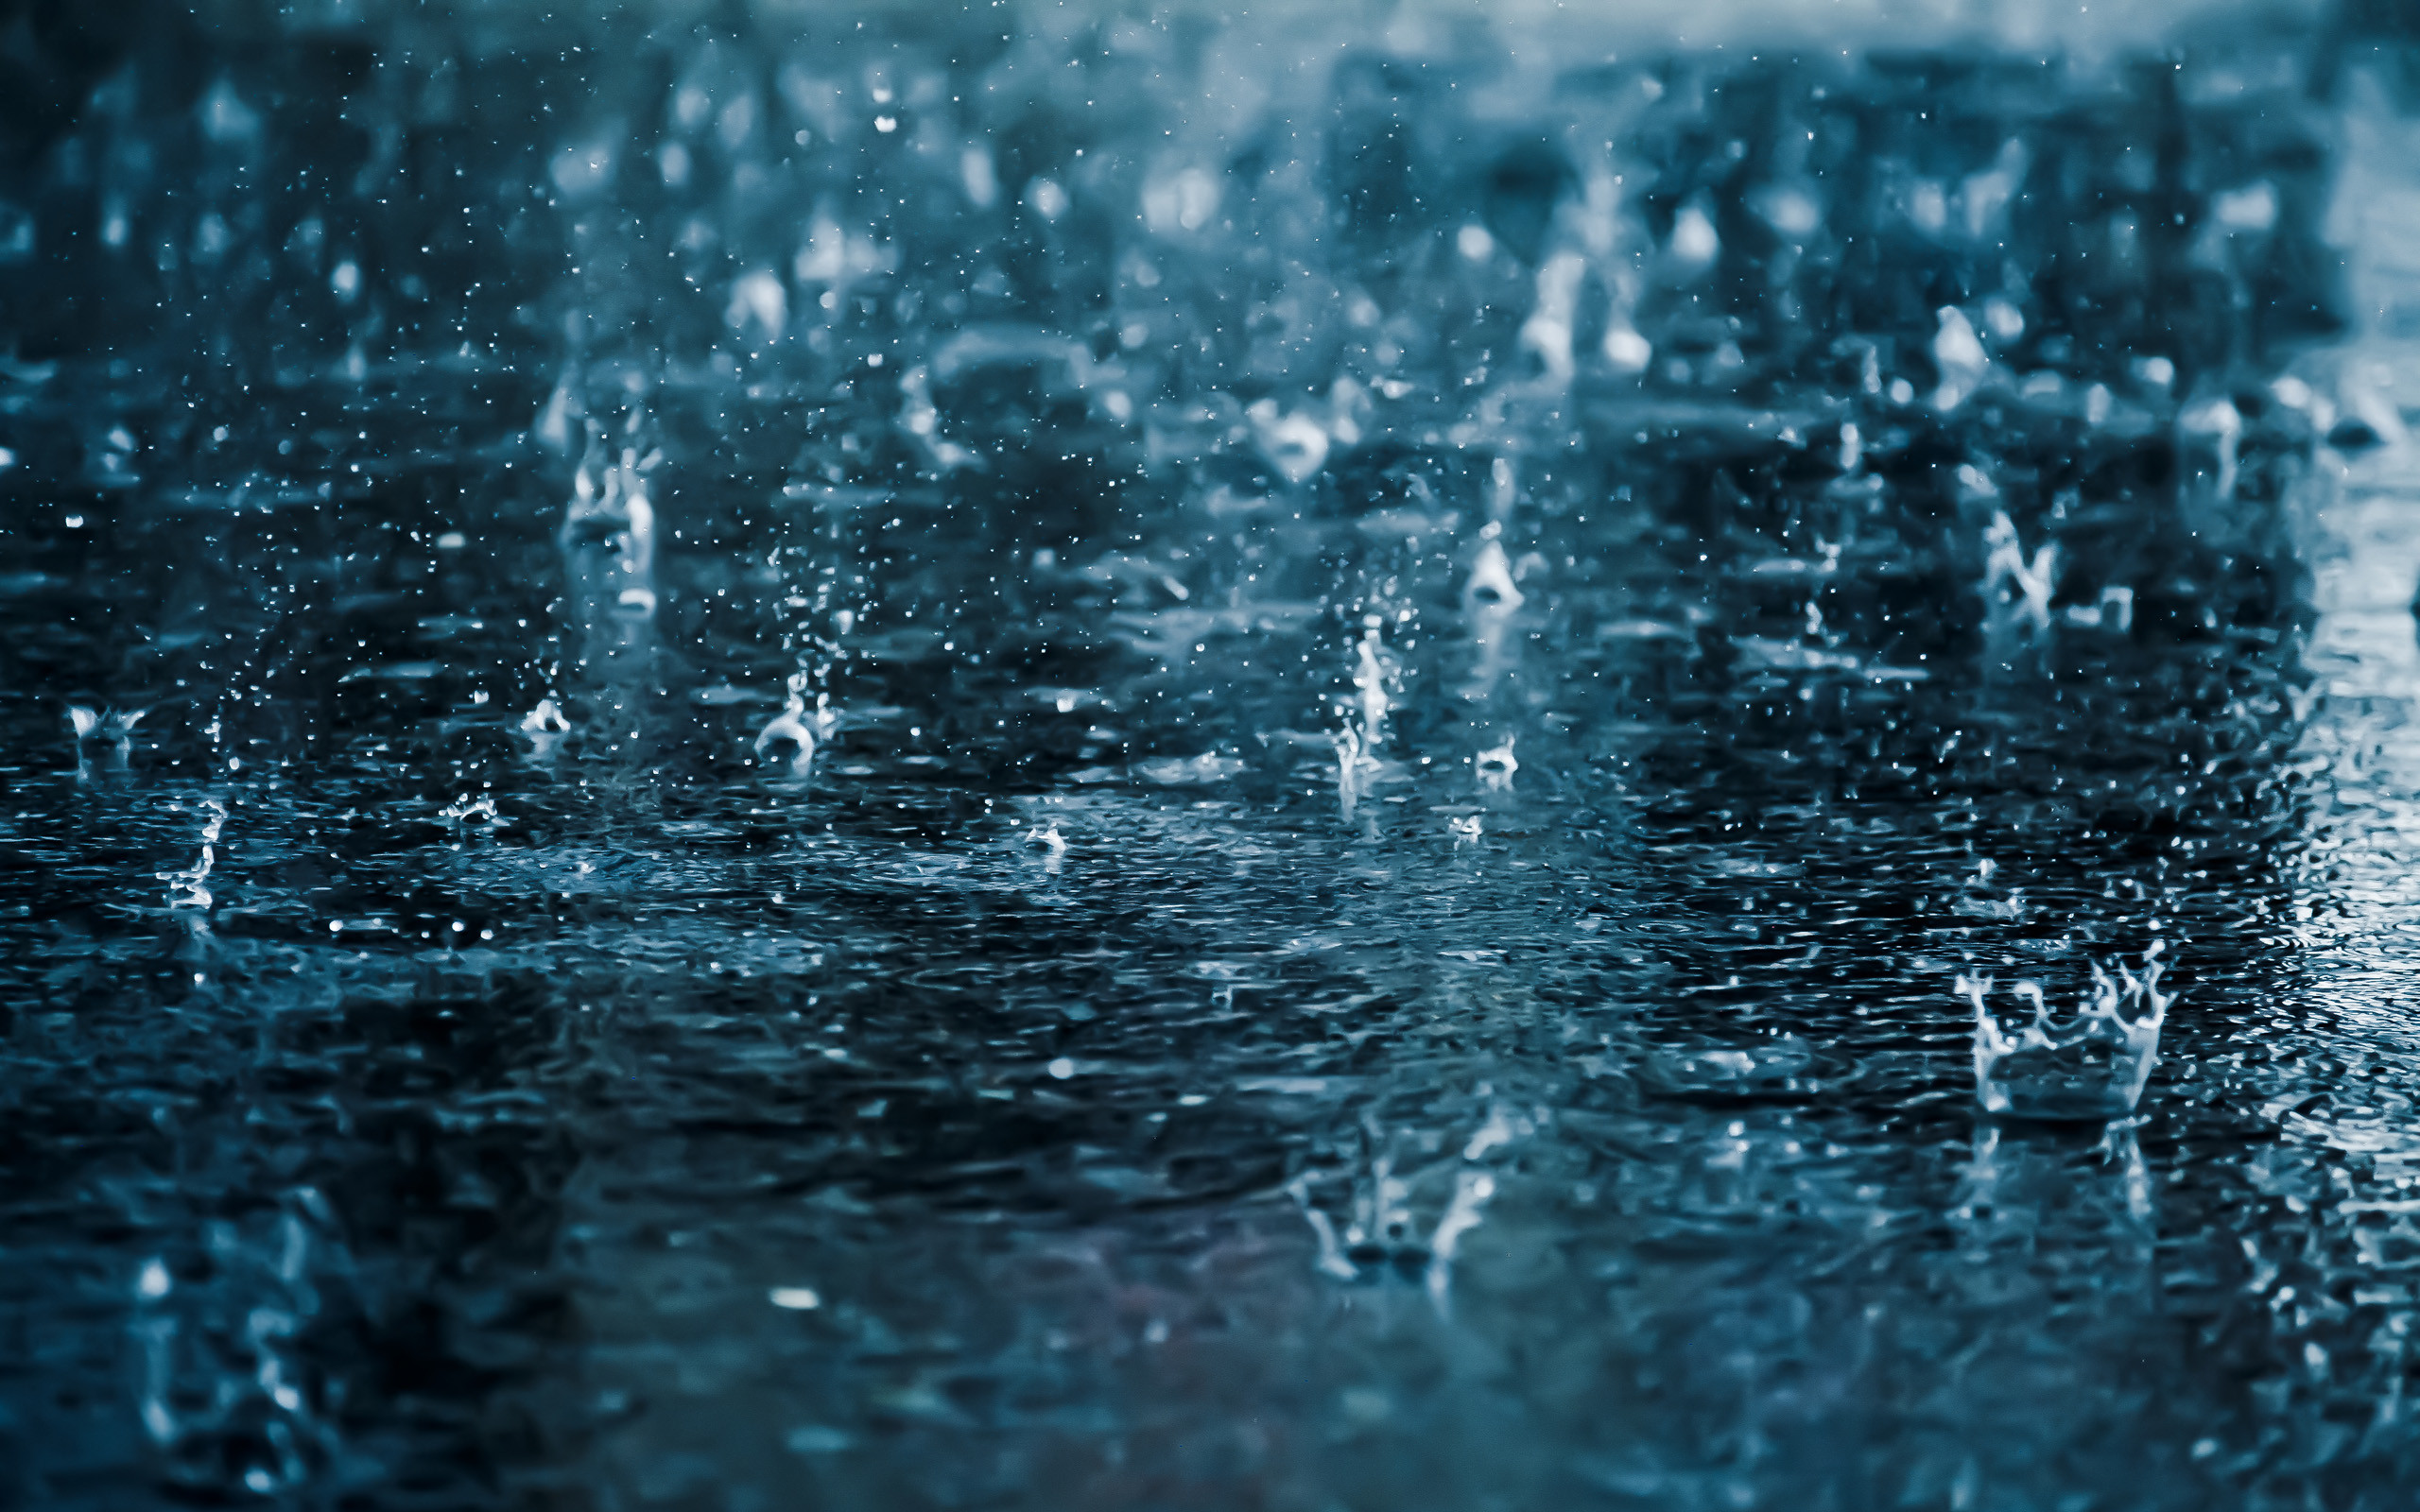 2560x1600 4K Ultra HD Backgrounds, Animated Rain - Gulistan Goodsal